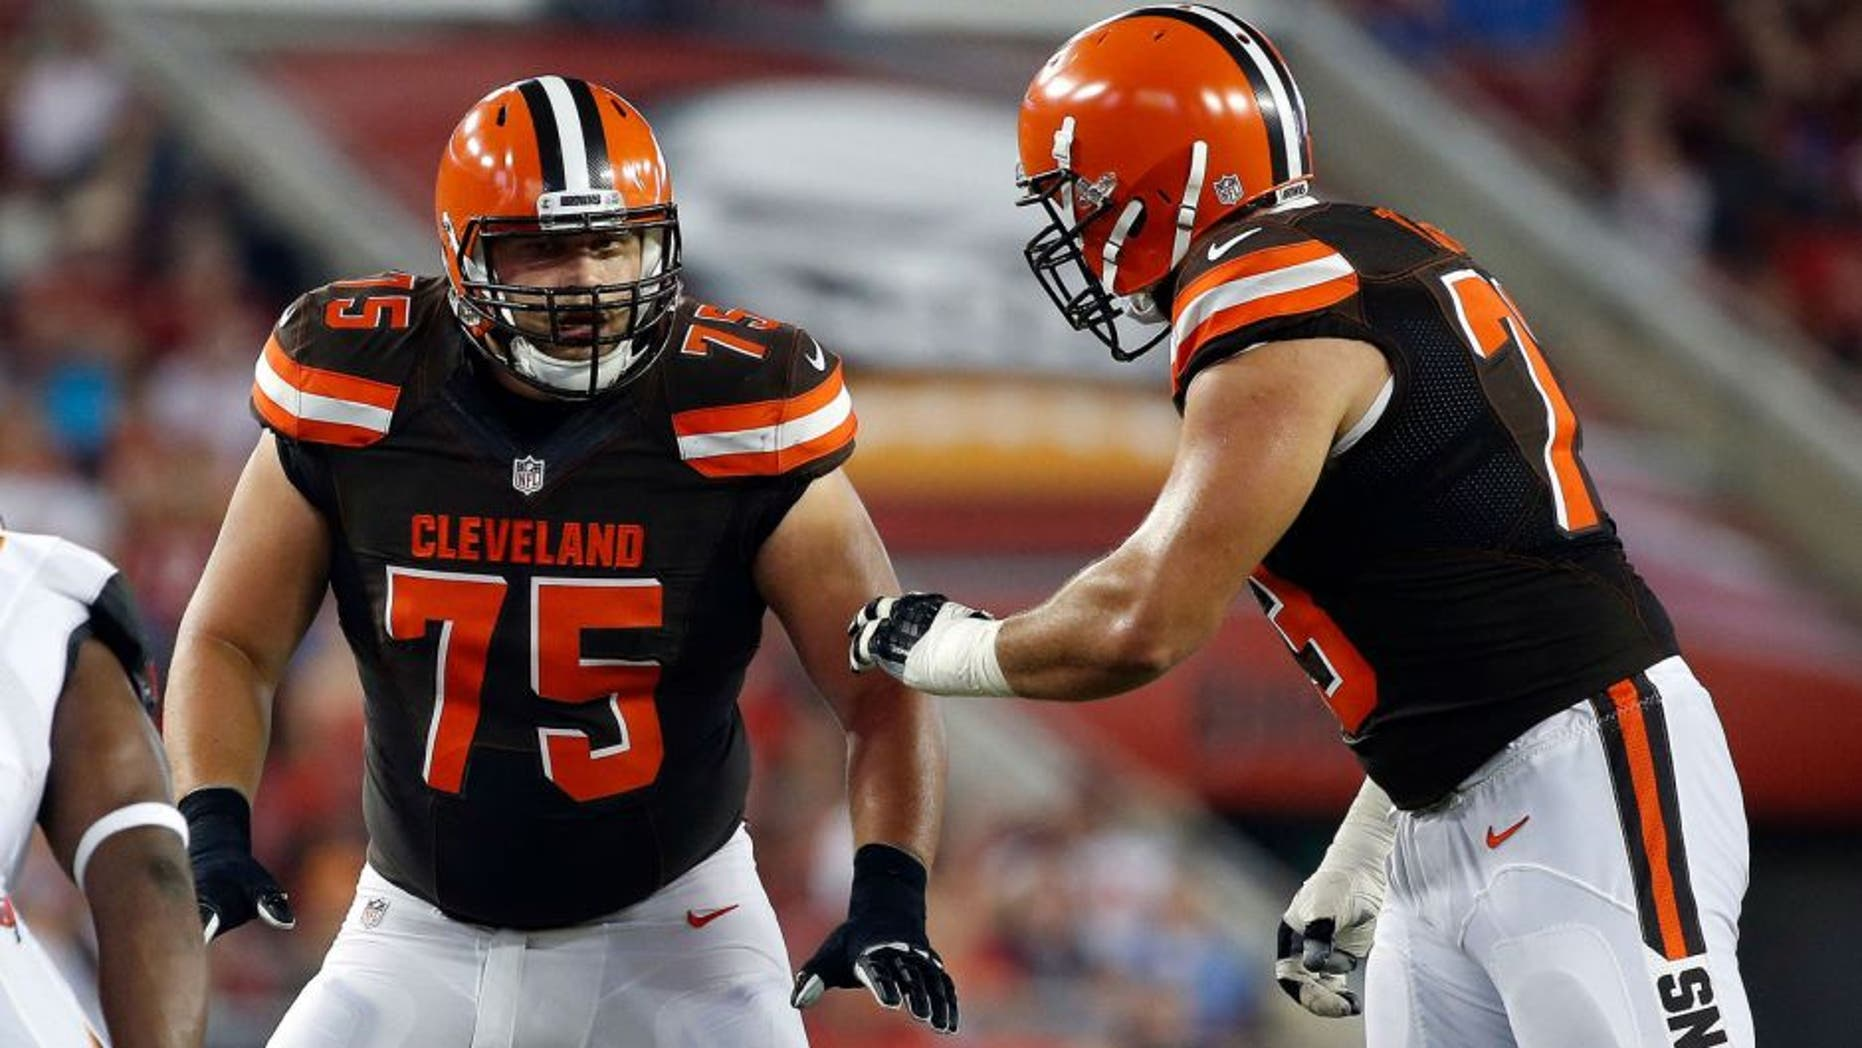 Aug 26, 2016; Tampa, FL, USA; Cleveland Browns guard Joel Bitonio (75) and tackle Joe Thomas (73) talk against the Tampa Bay Buccaneers during the first quarter at Raymond James Stadium. Mandatory Credit: Kim Klement-USA TODAY Sports